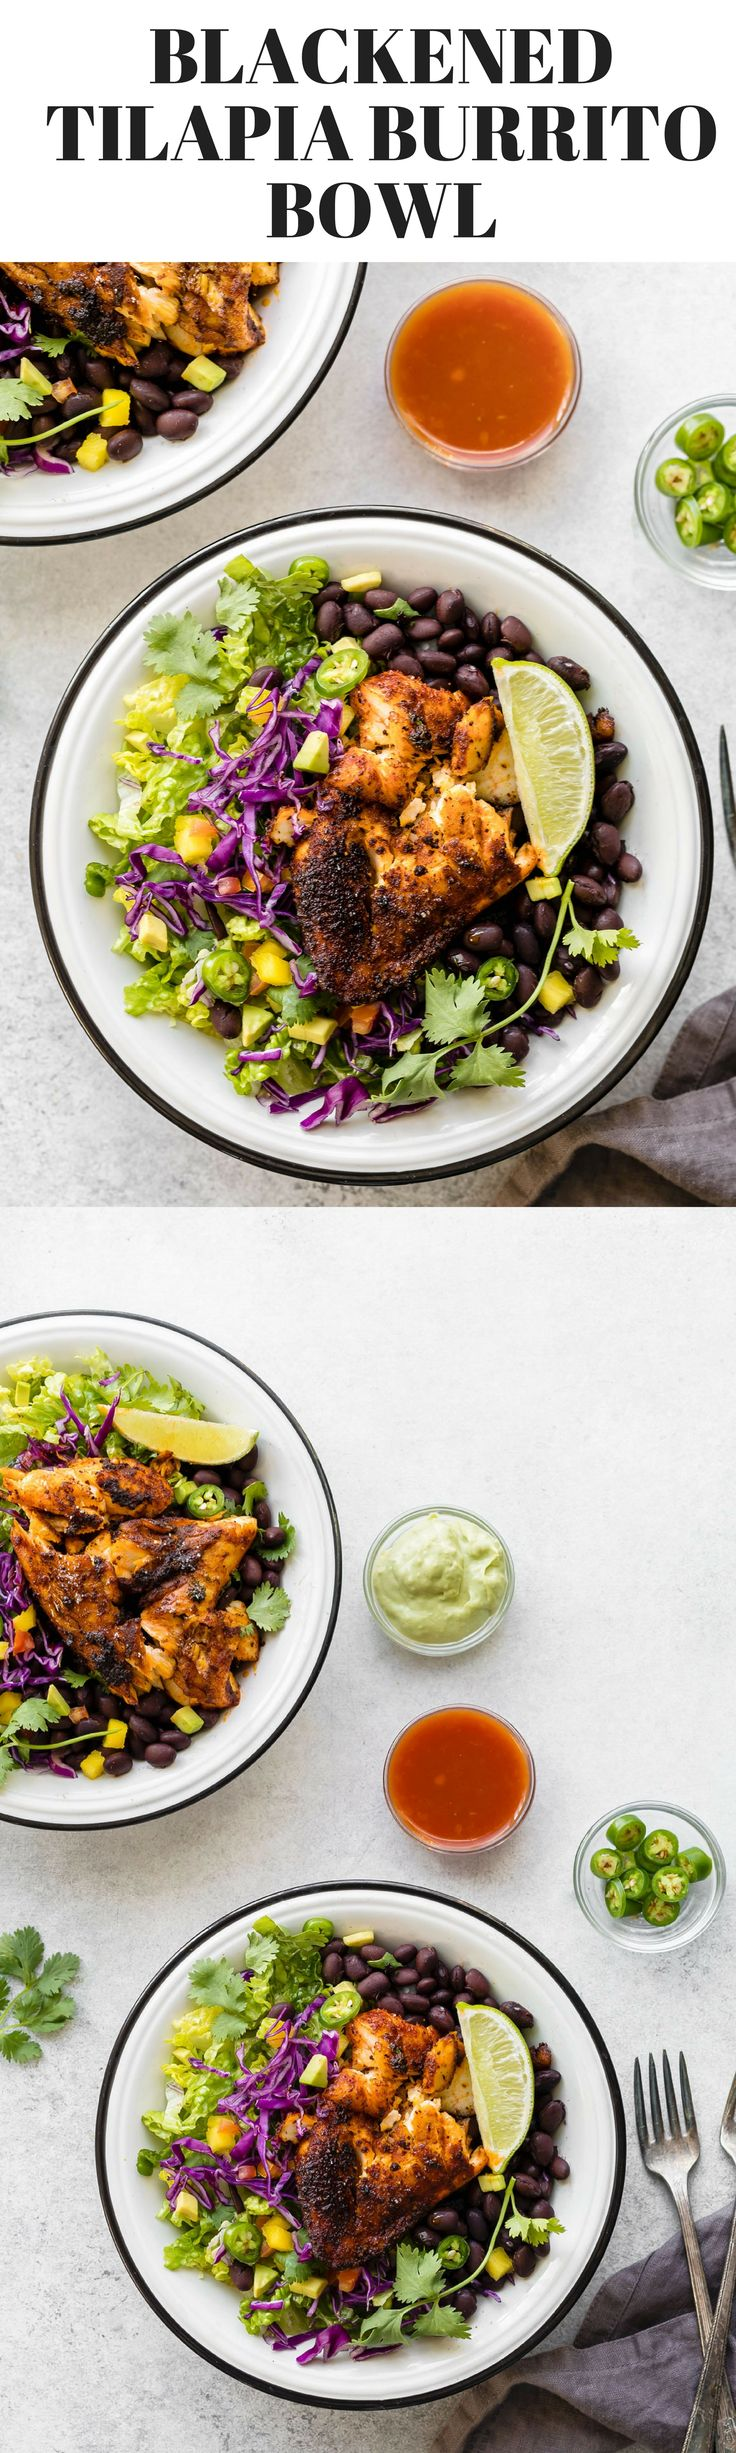 Blackened Tilapia Recipe for Fish Tacos or Burrito Bowl. Stove Top Blackened Tilapia recipe, Cajun style, perfect for fish tacos or burrito bowl. Tilapia fillets, marinated in homemade blackened fish seasoning, then cooked in a heavy cast-iron pan. #TINSTARFOODS #AD